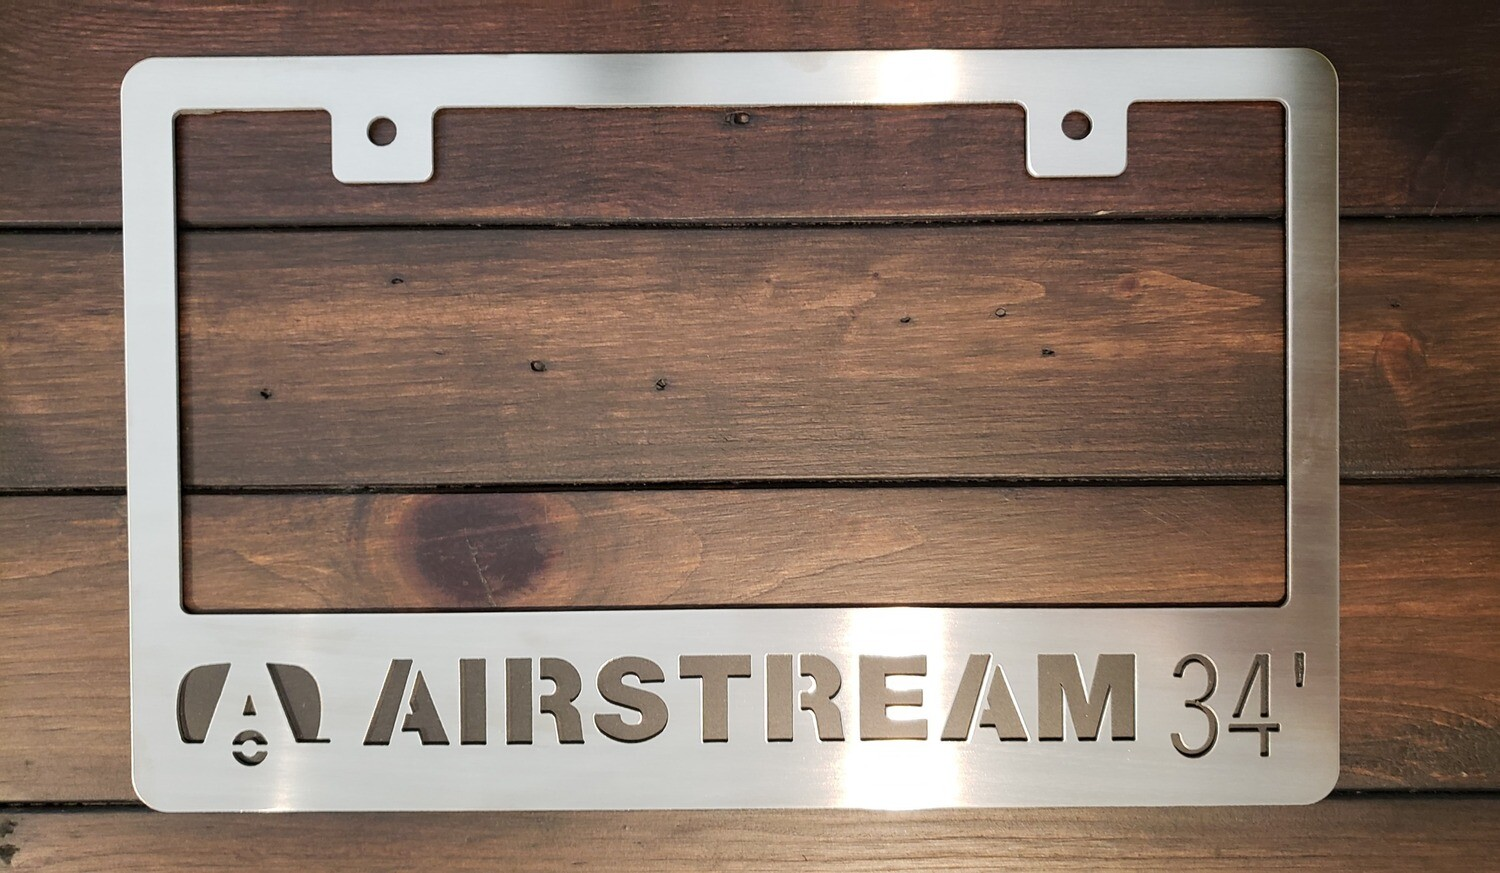 Airstream 34' License Plate Frame